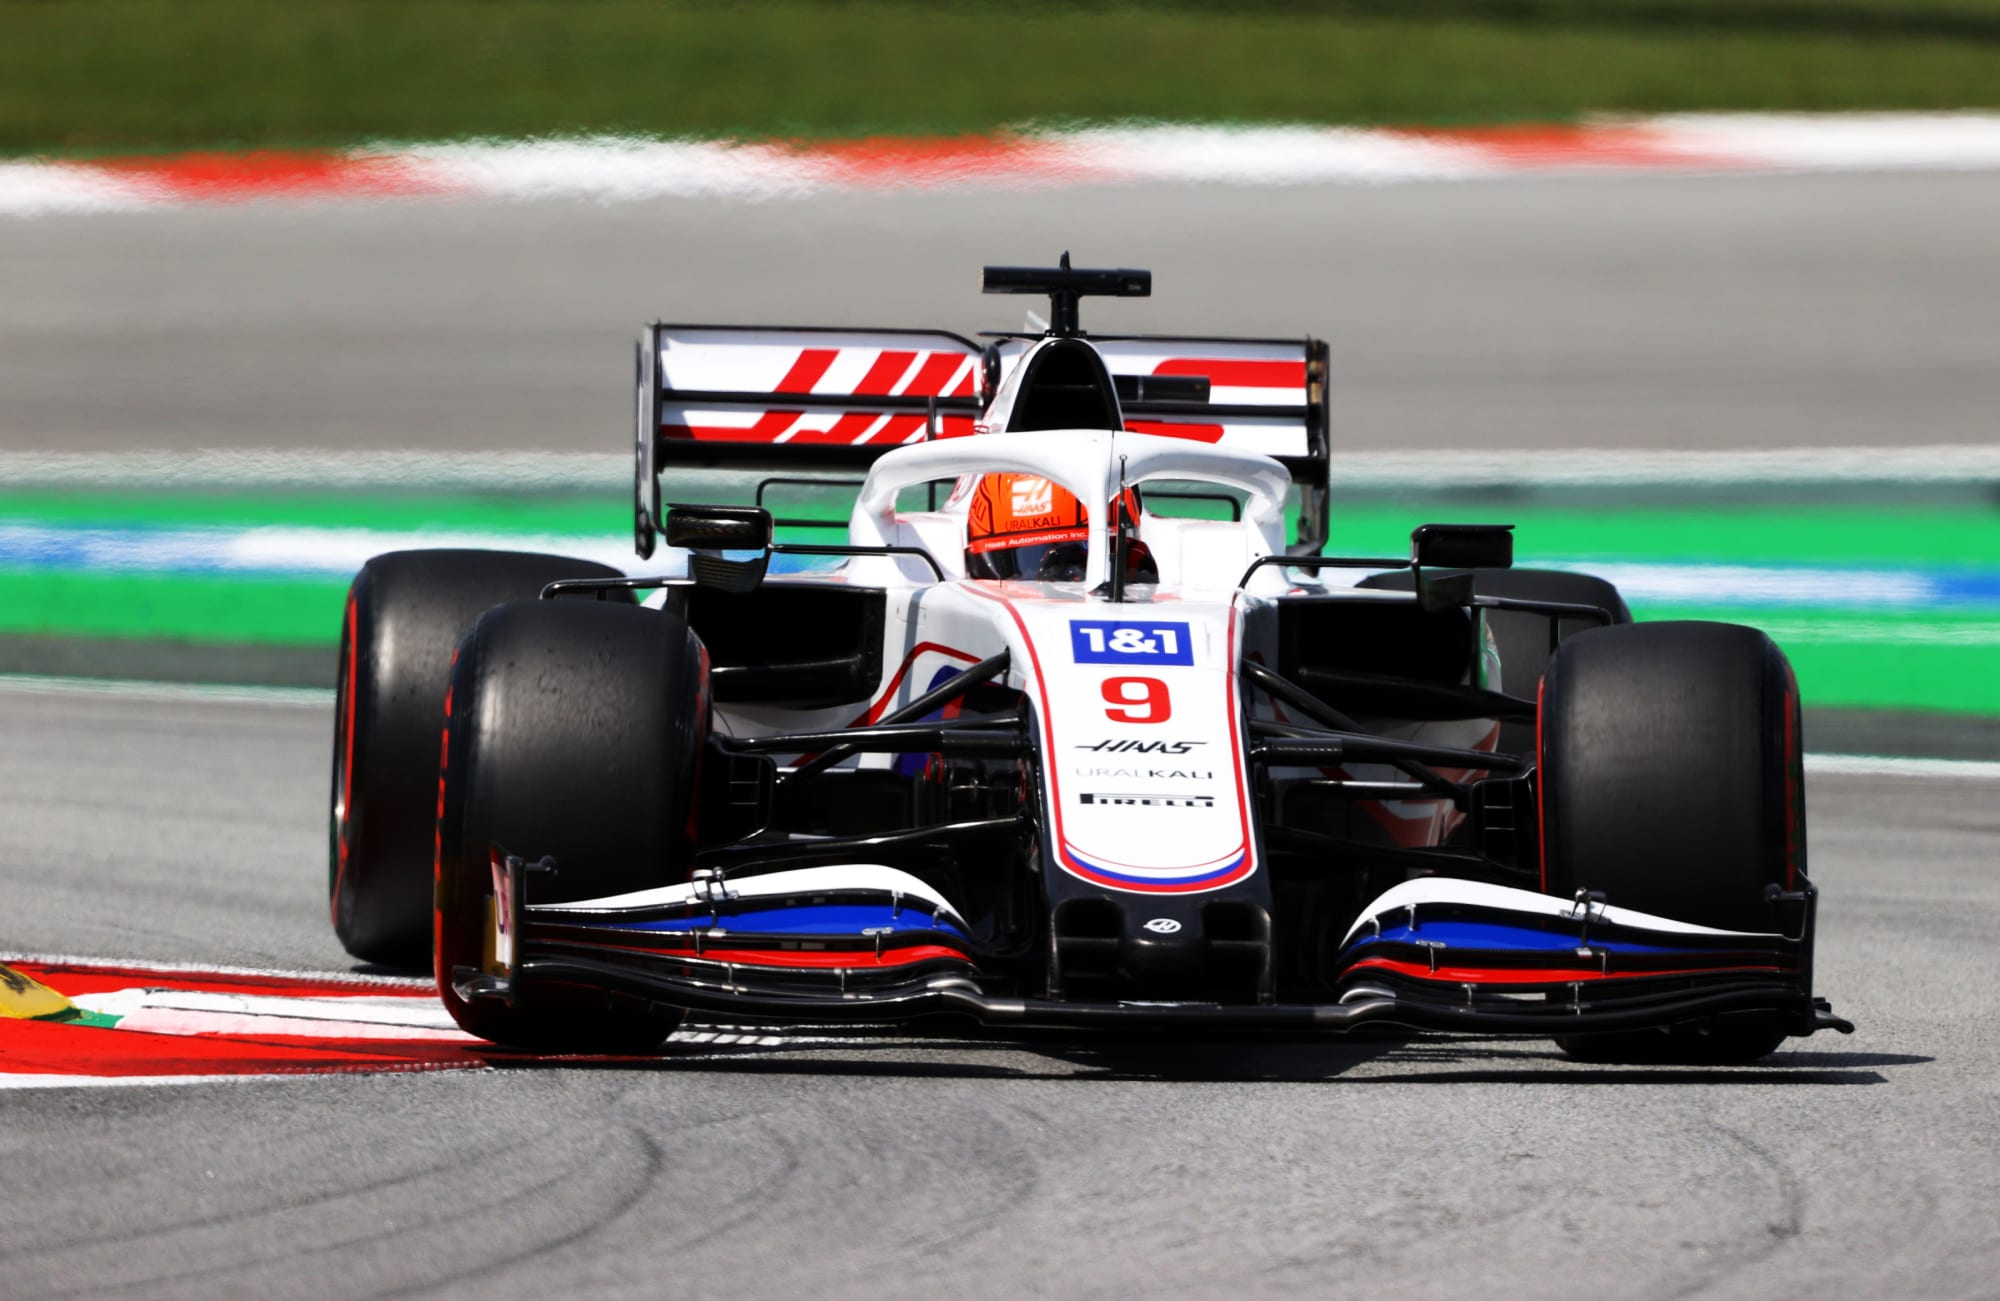 Formula 1: Nikita Mazepin's driving prompts first-of-its-kind reaction